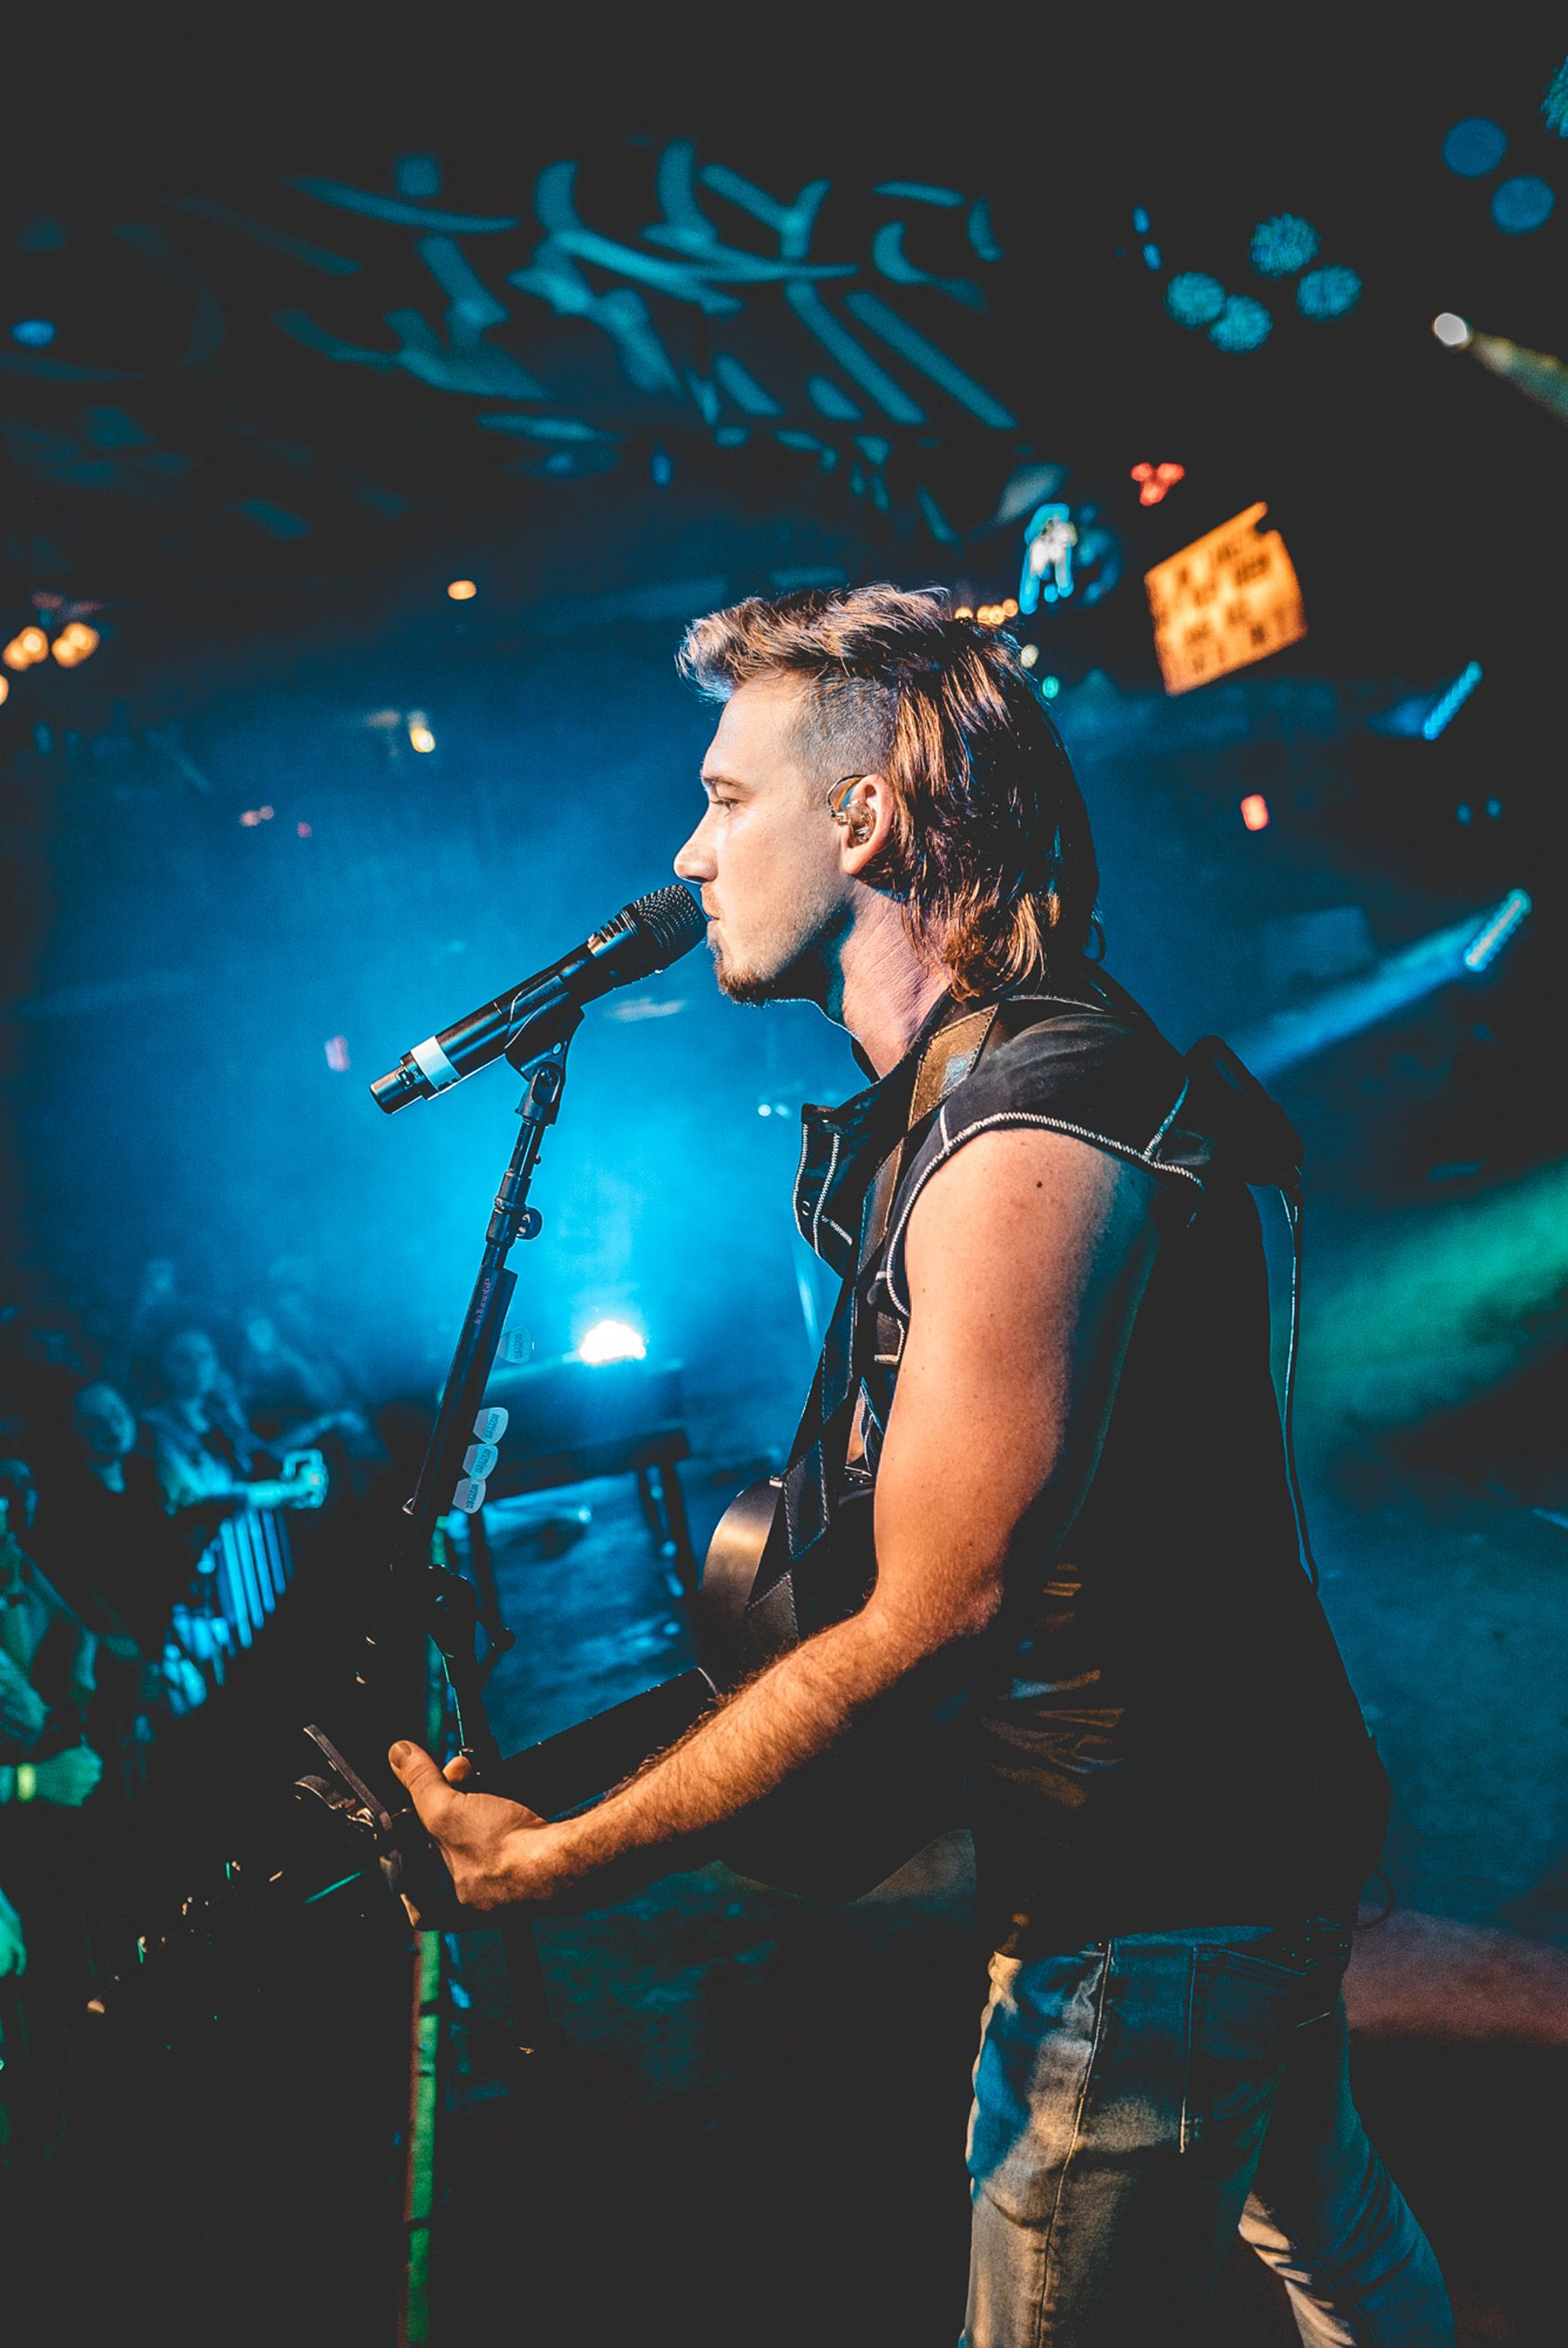 Morgan Wallen Knocks Em Out Not Back With Whiskey Glasses On His Just Completed Tour Western Photo Cute Country Boys Western Wall Art